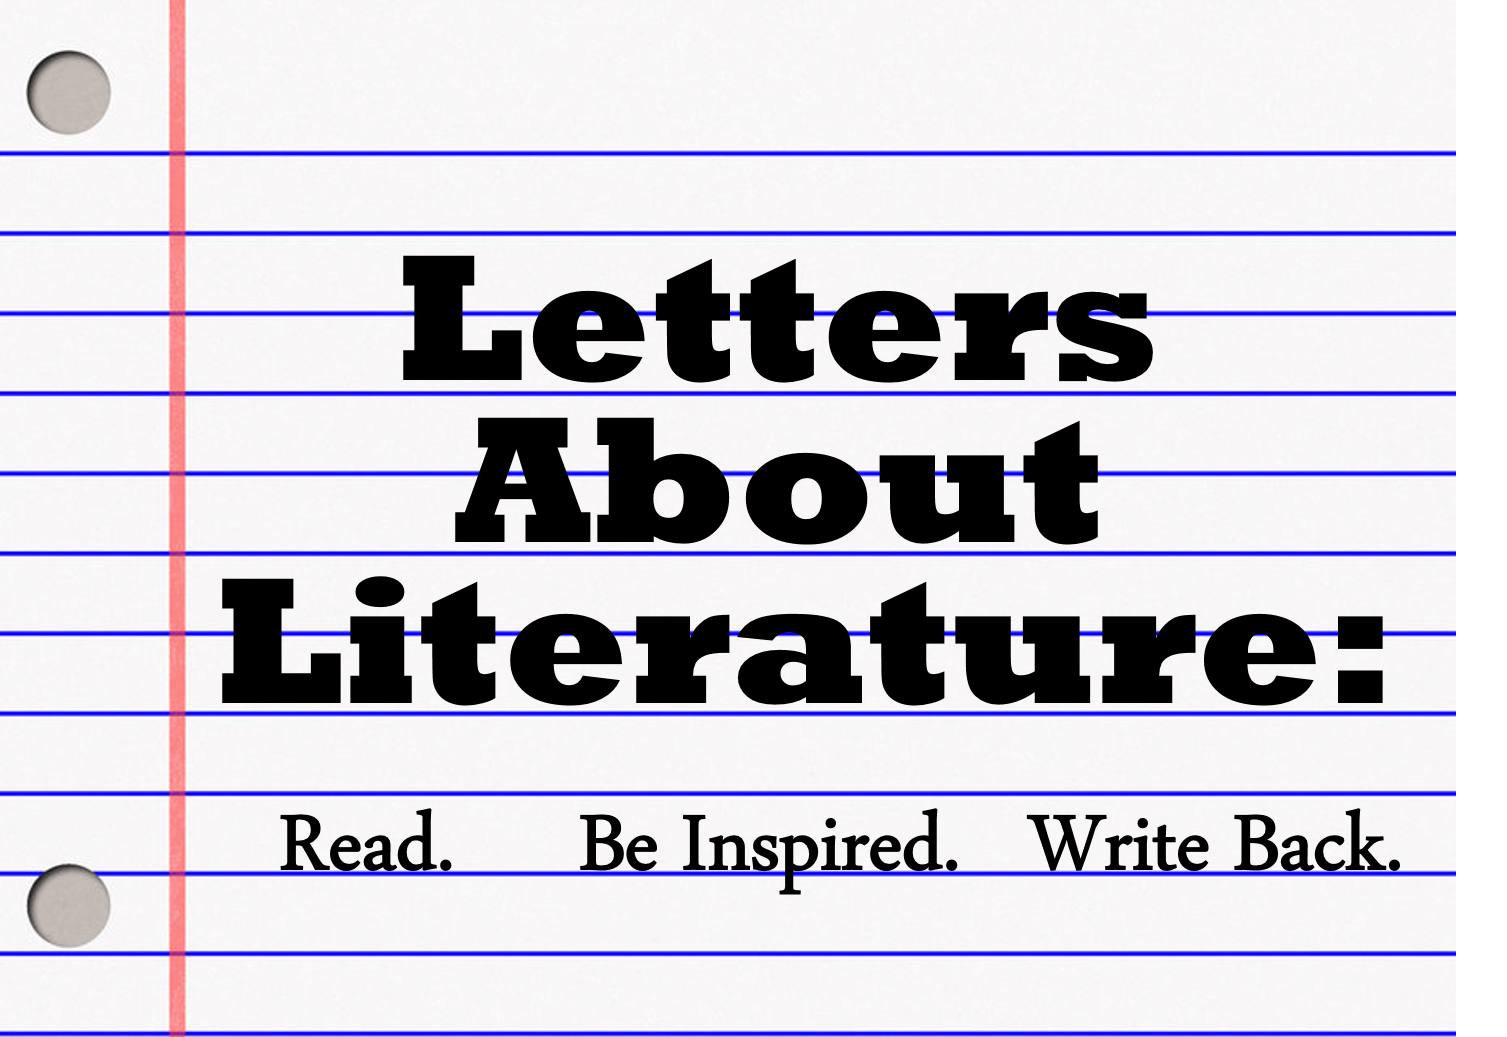 Letters About Literature: A contest and so much more